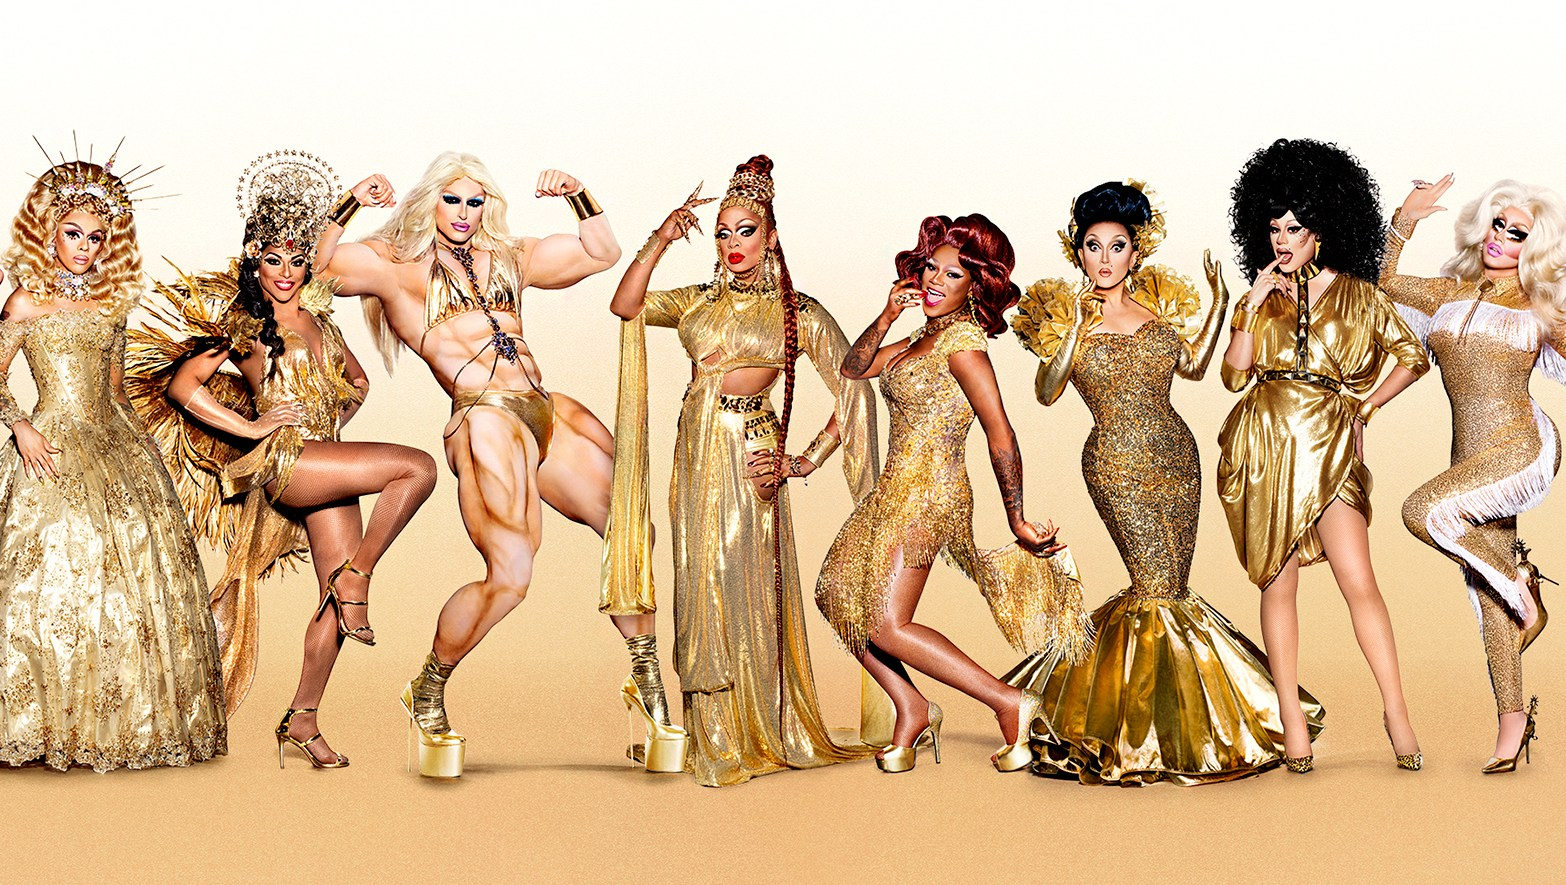 'RuPaul's Drag Race All Stars 3' cast